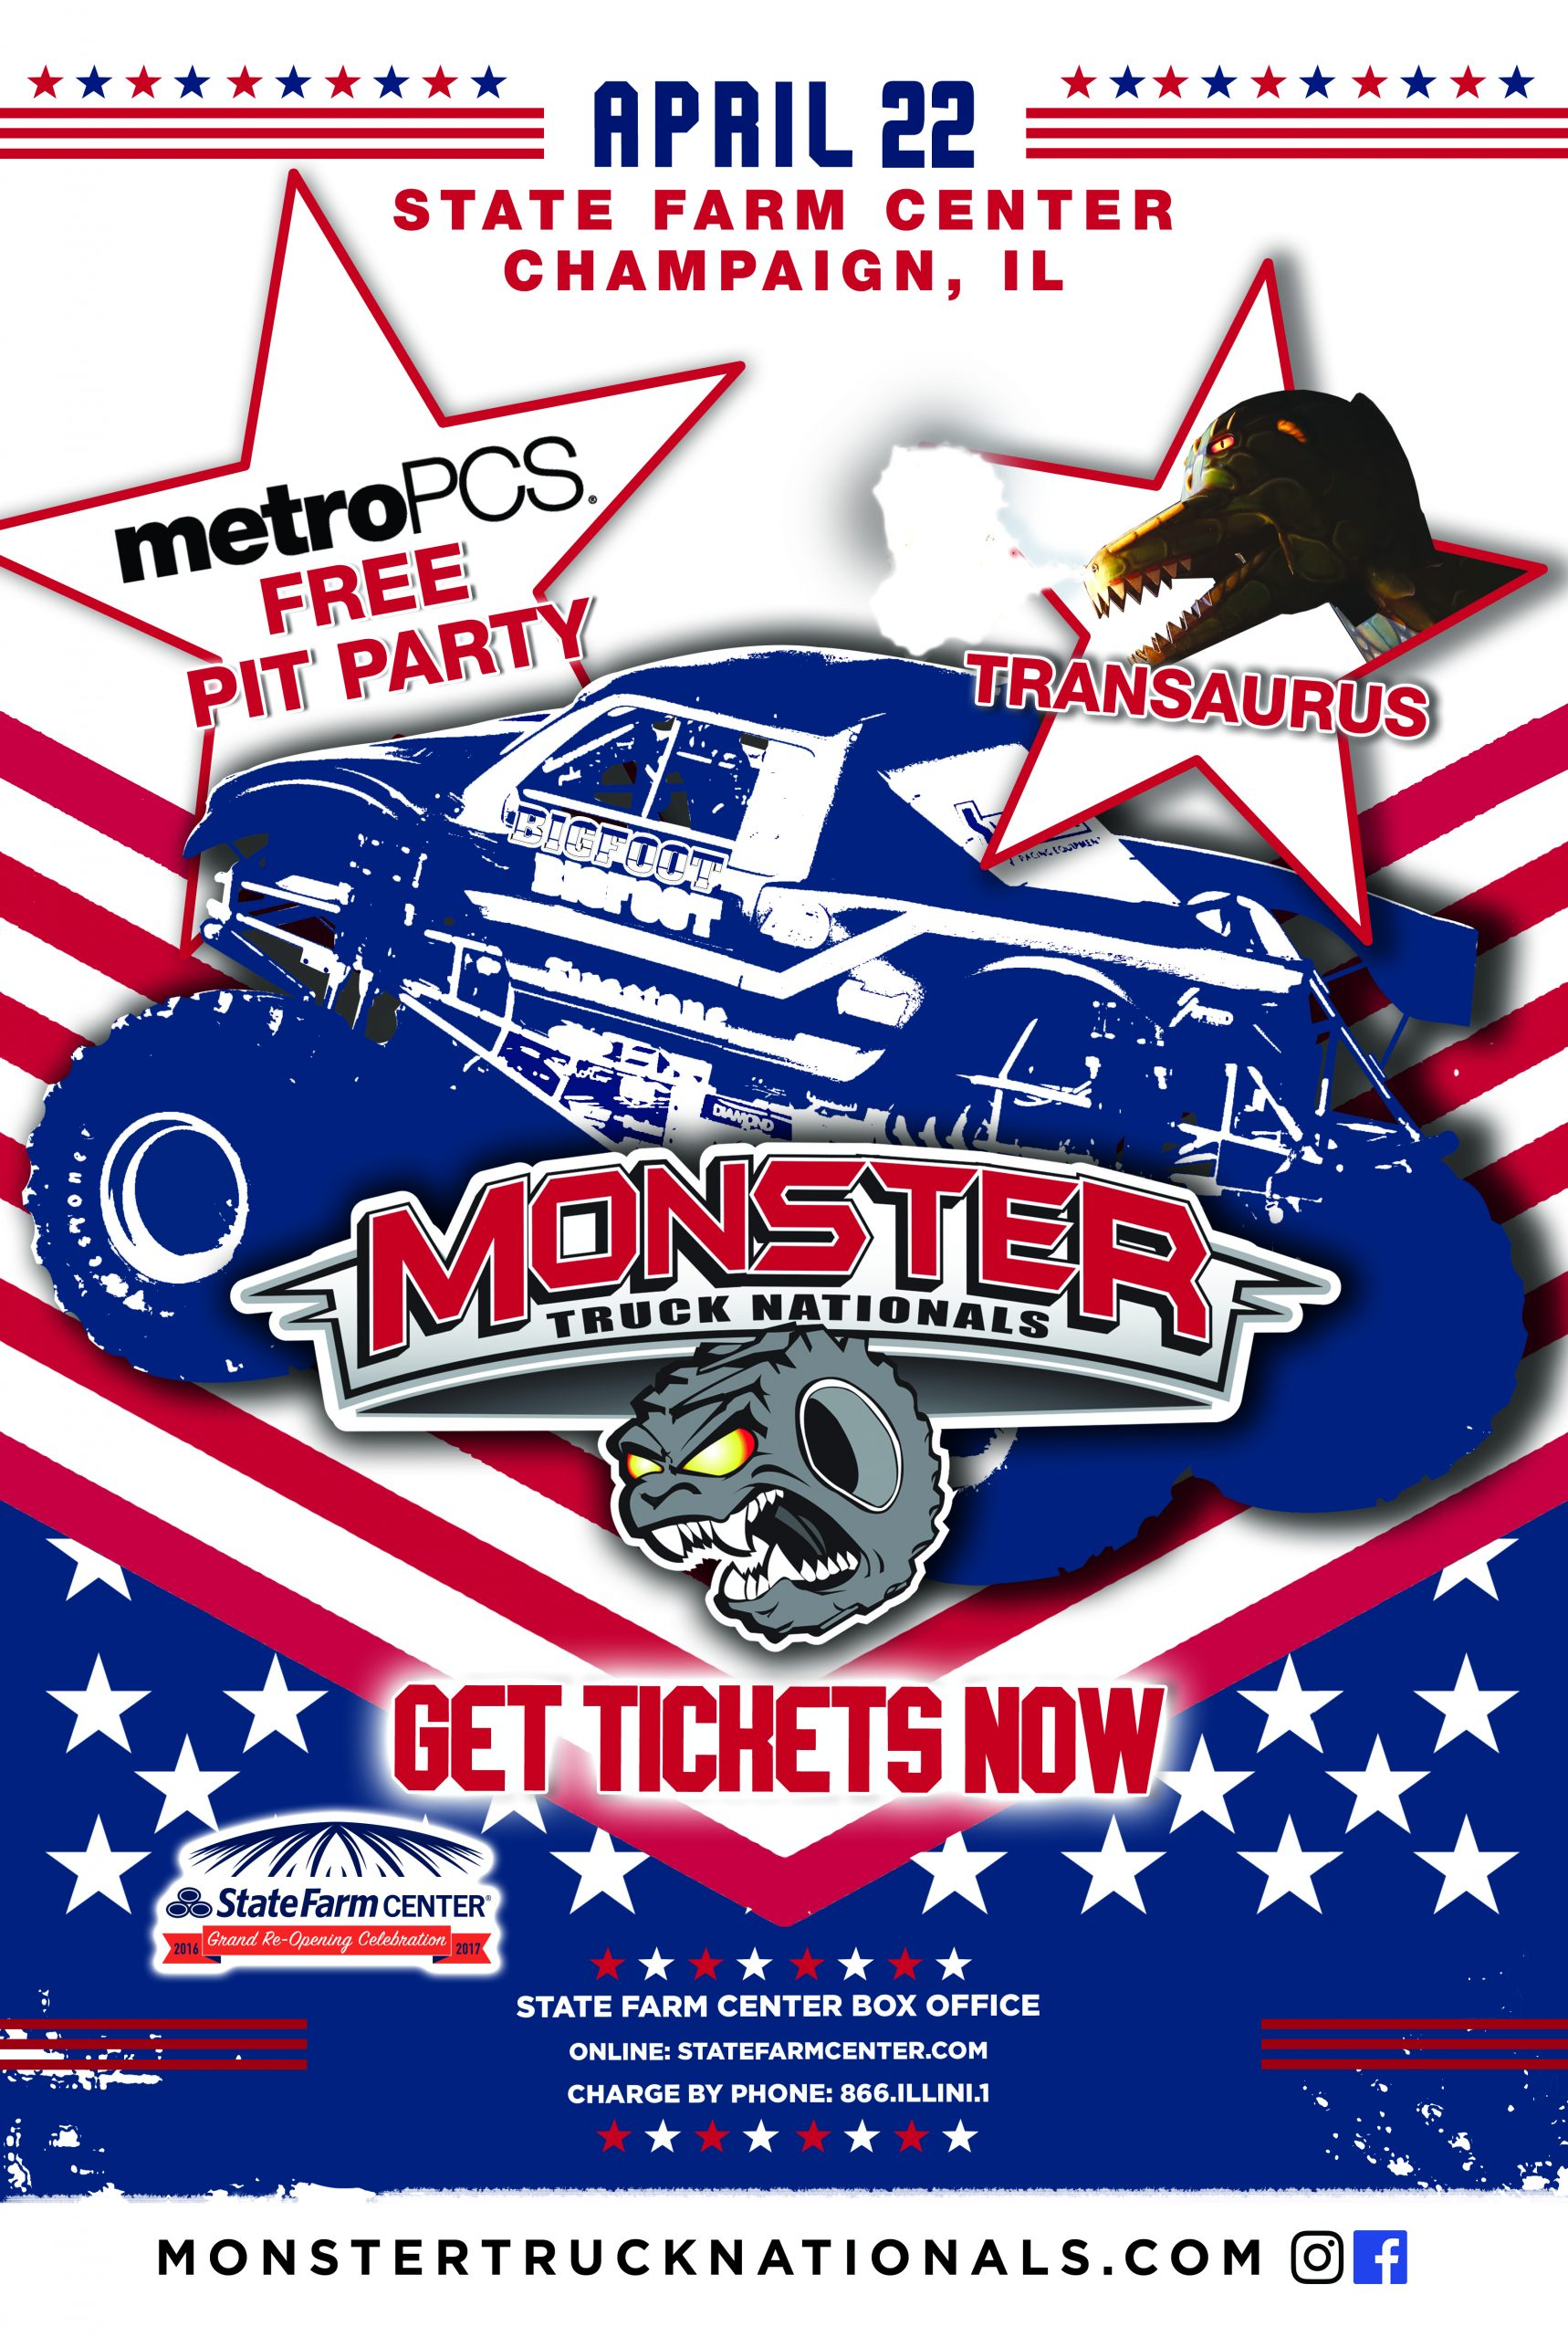 Last Chance to Win Tickets to Monster Truck Nationals